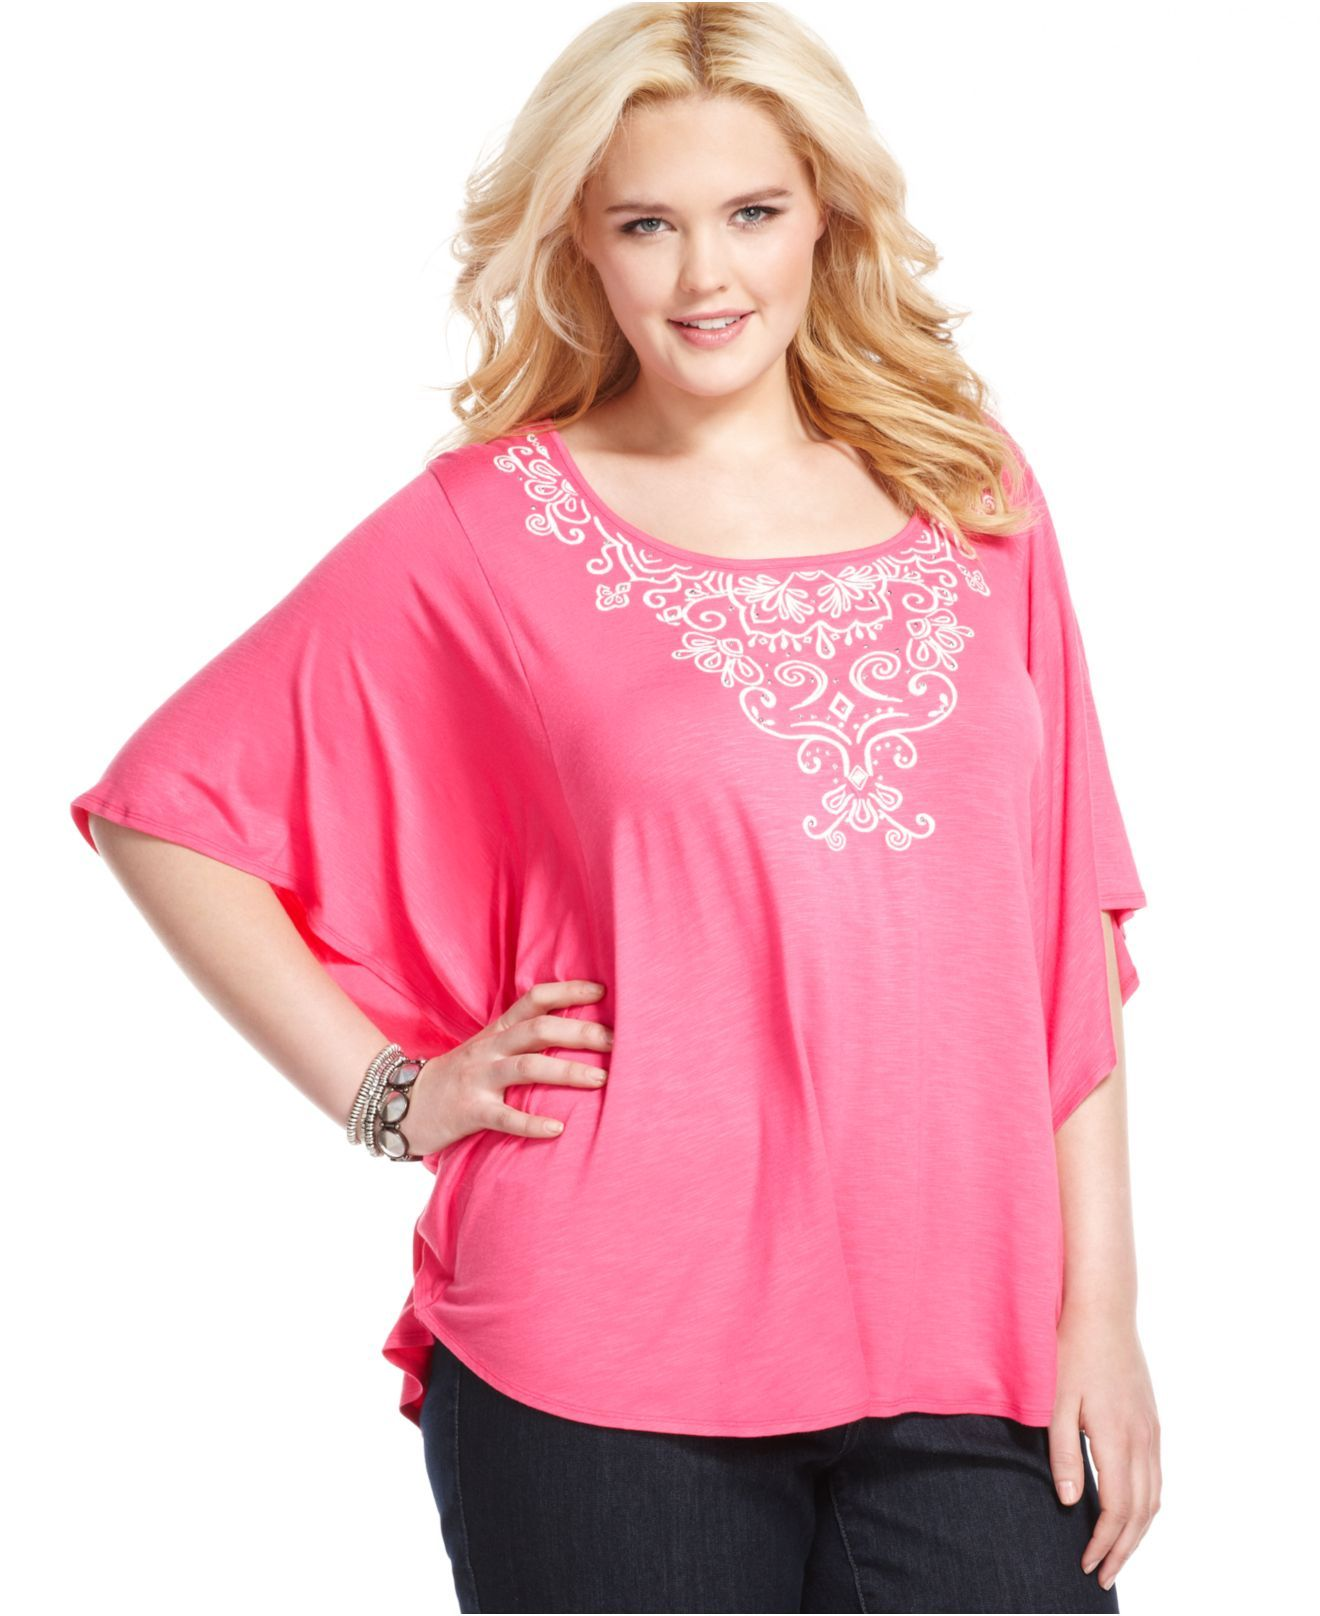 style plus size top, butterfly sleeve embroidered - plus size tops